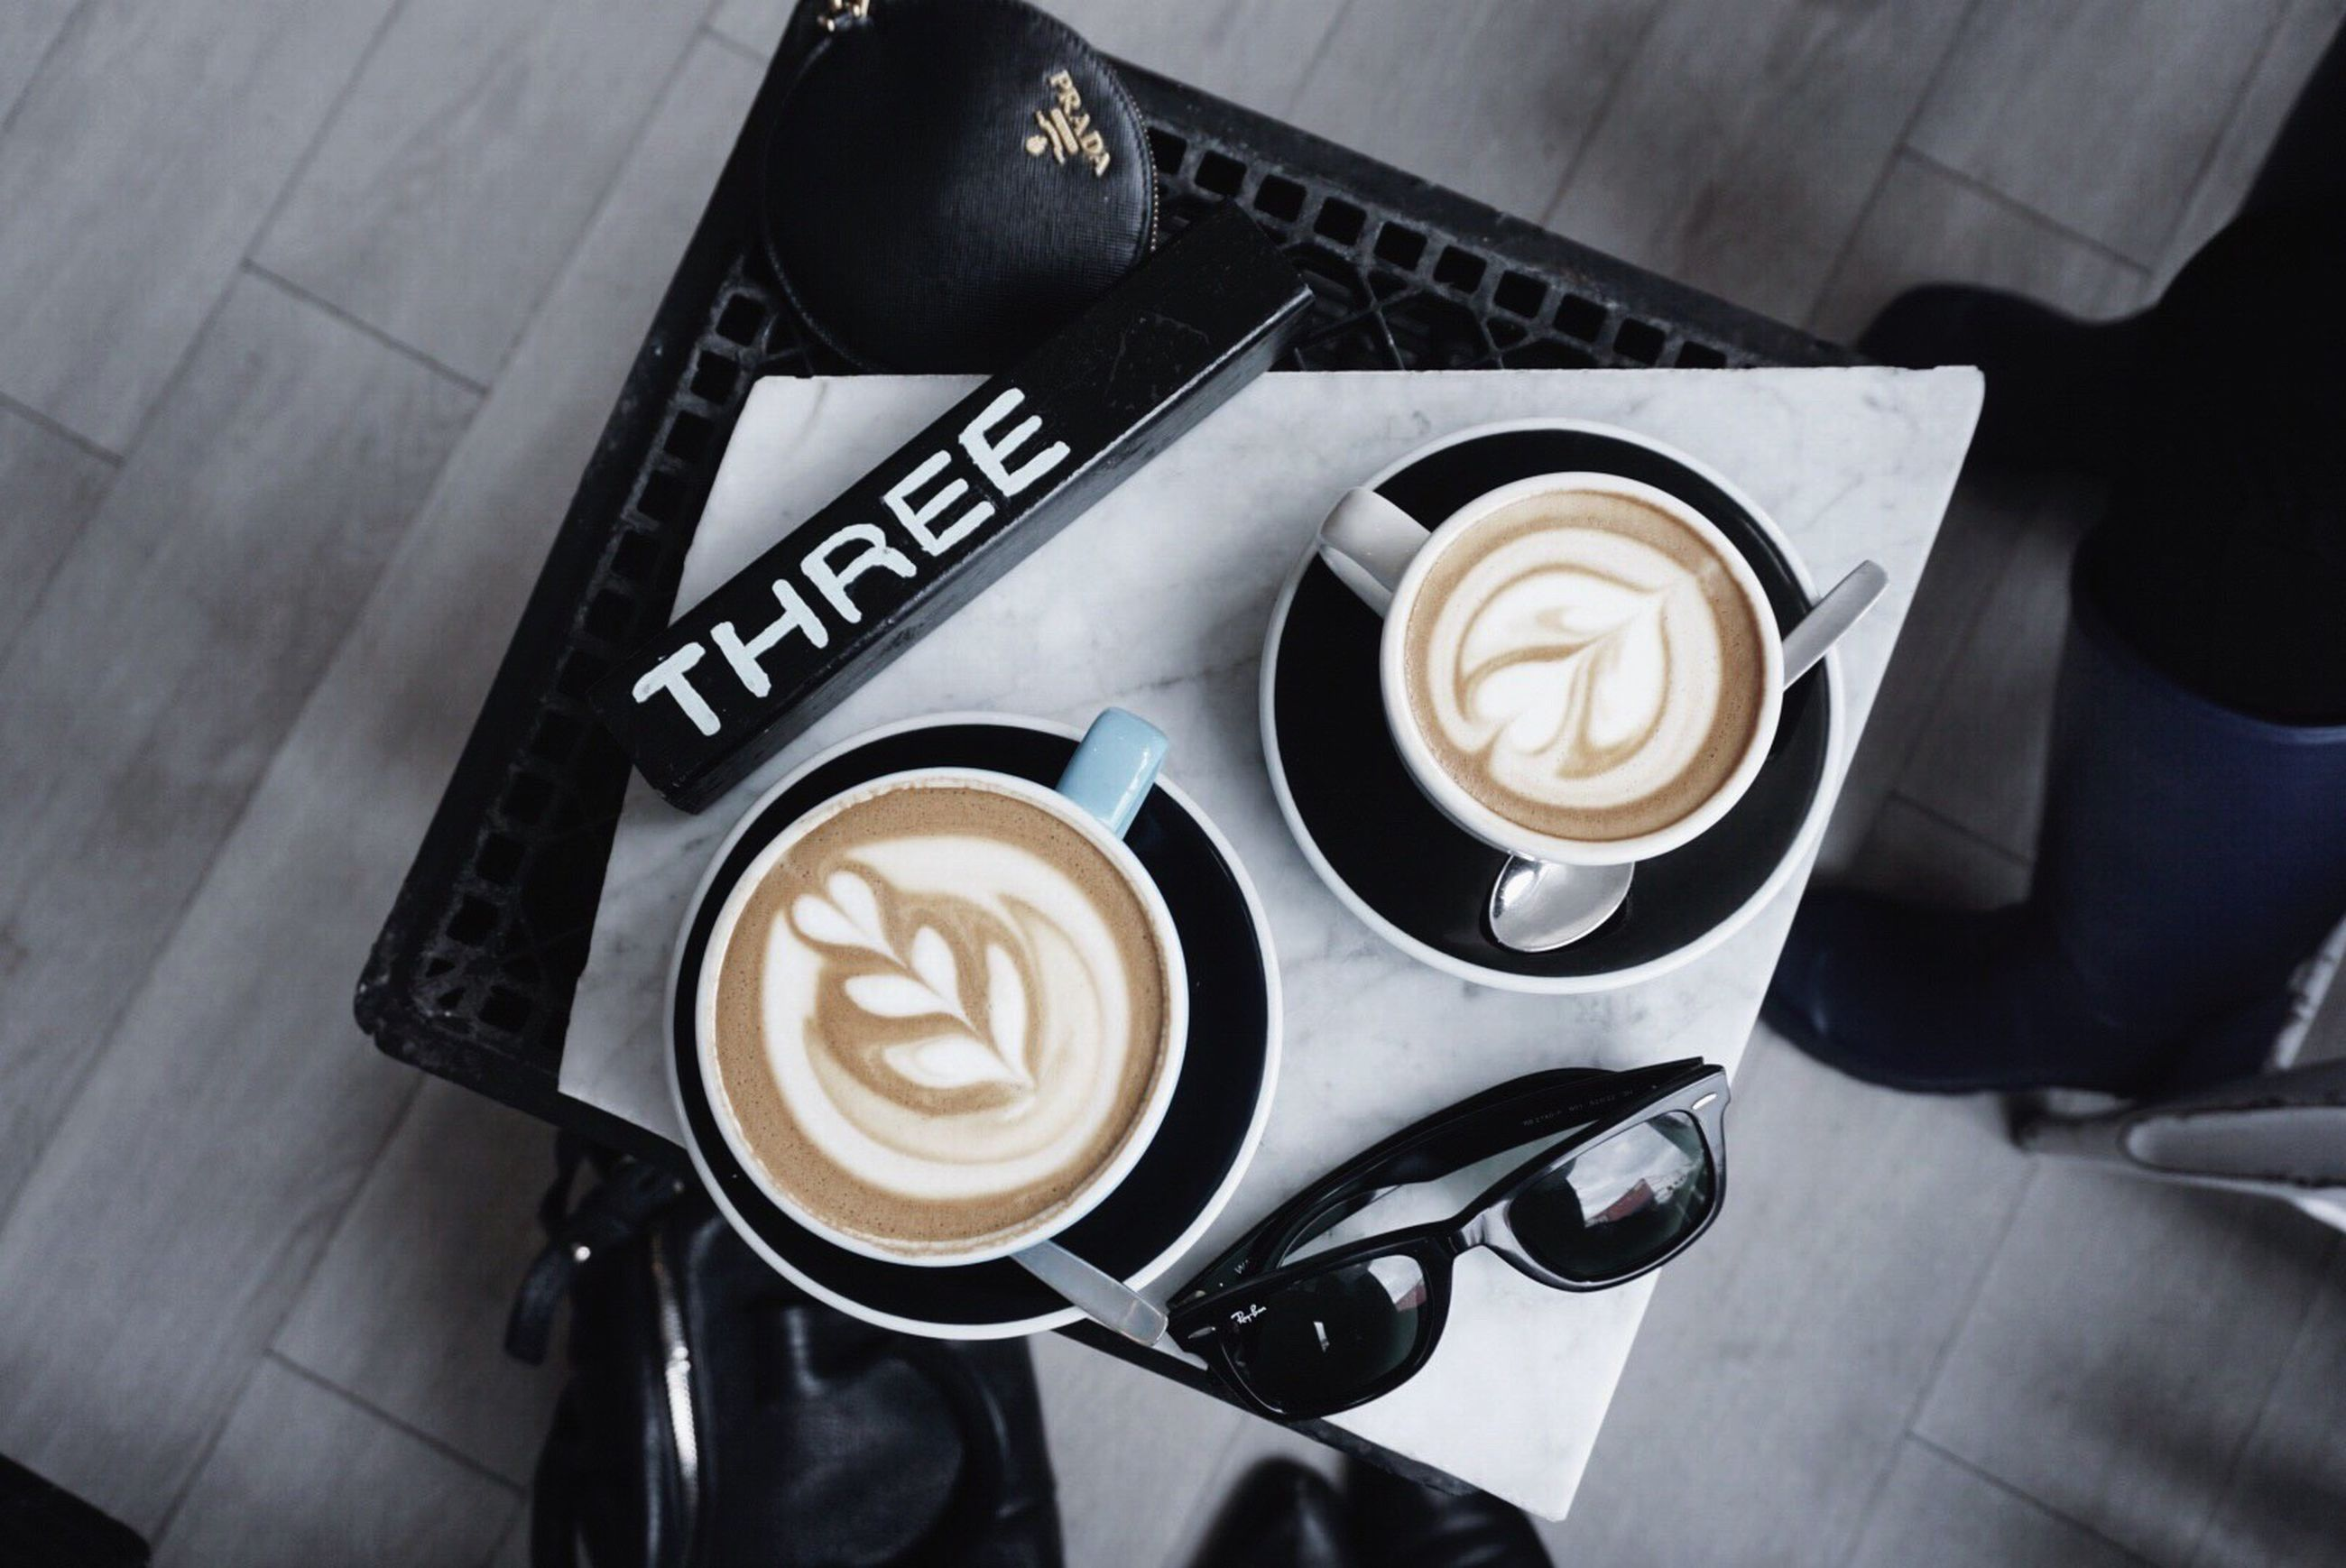 coffee - drink, coffee cup, cappuccino, drink, high angle view, froth art, frothy drink, food and drink, latte, refreshment, lifestyles, table, espresso, tuxedo, coffee break, leisure activity, indoors, close-up, mocha, no people, day